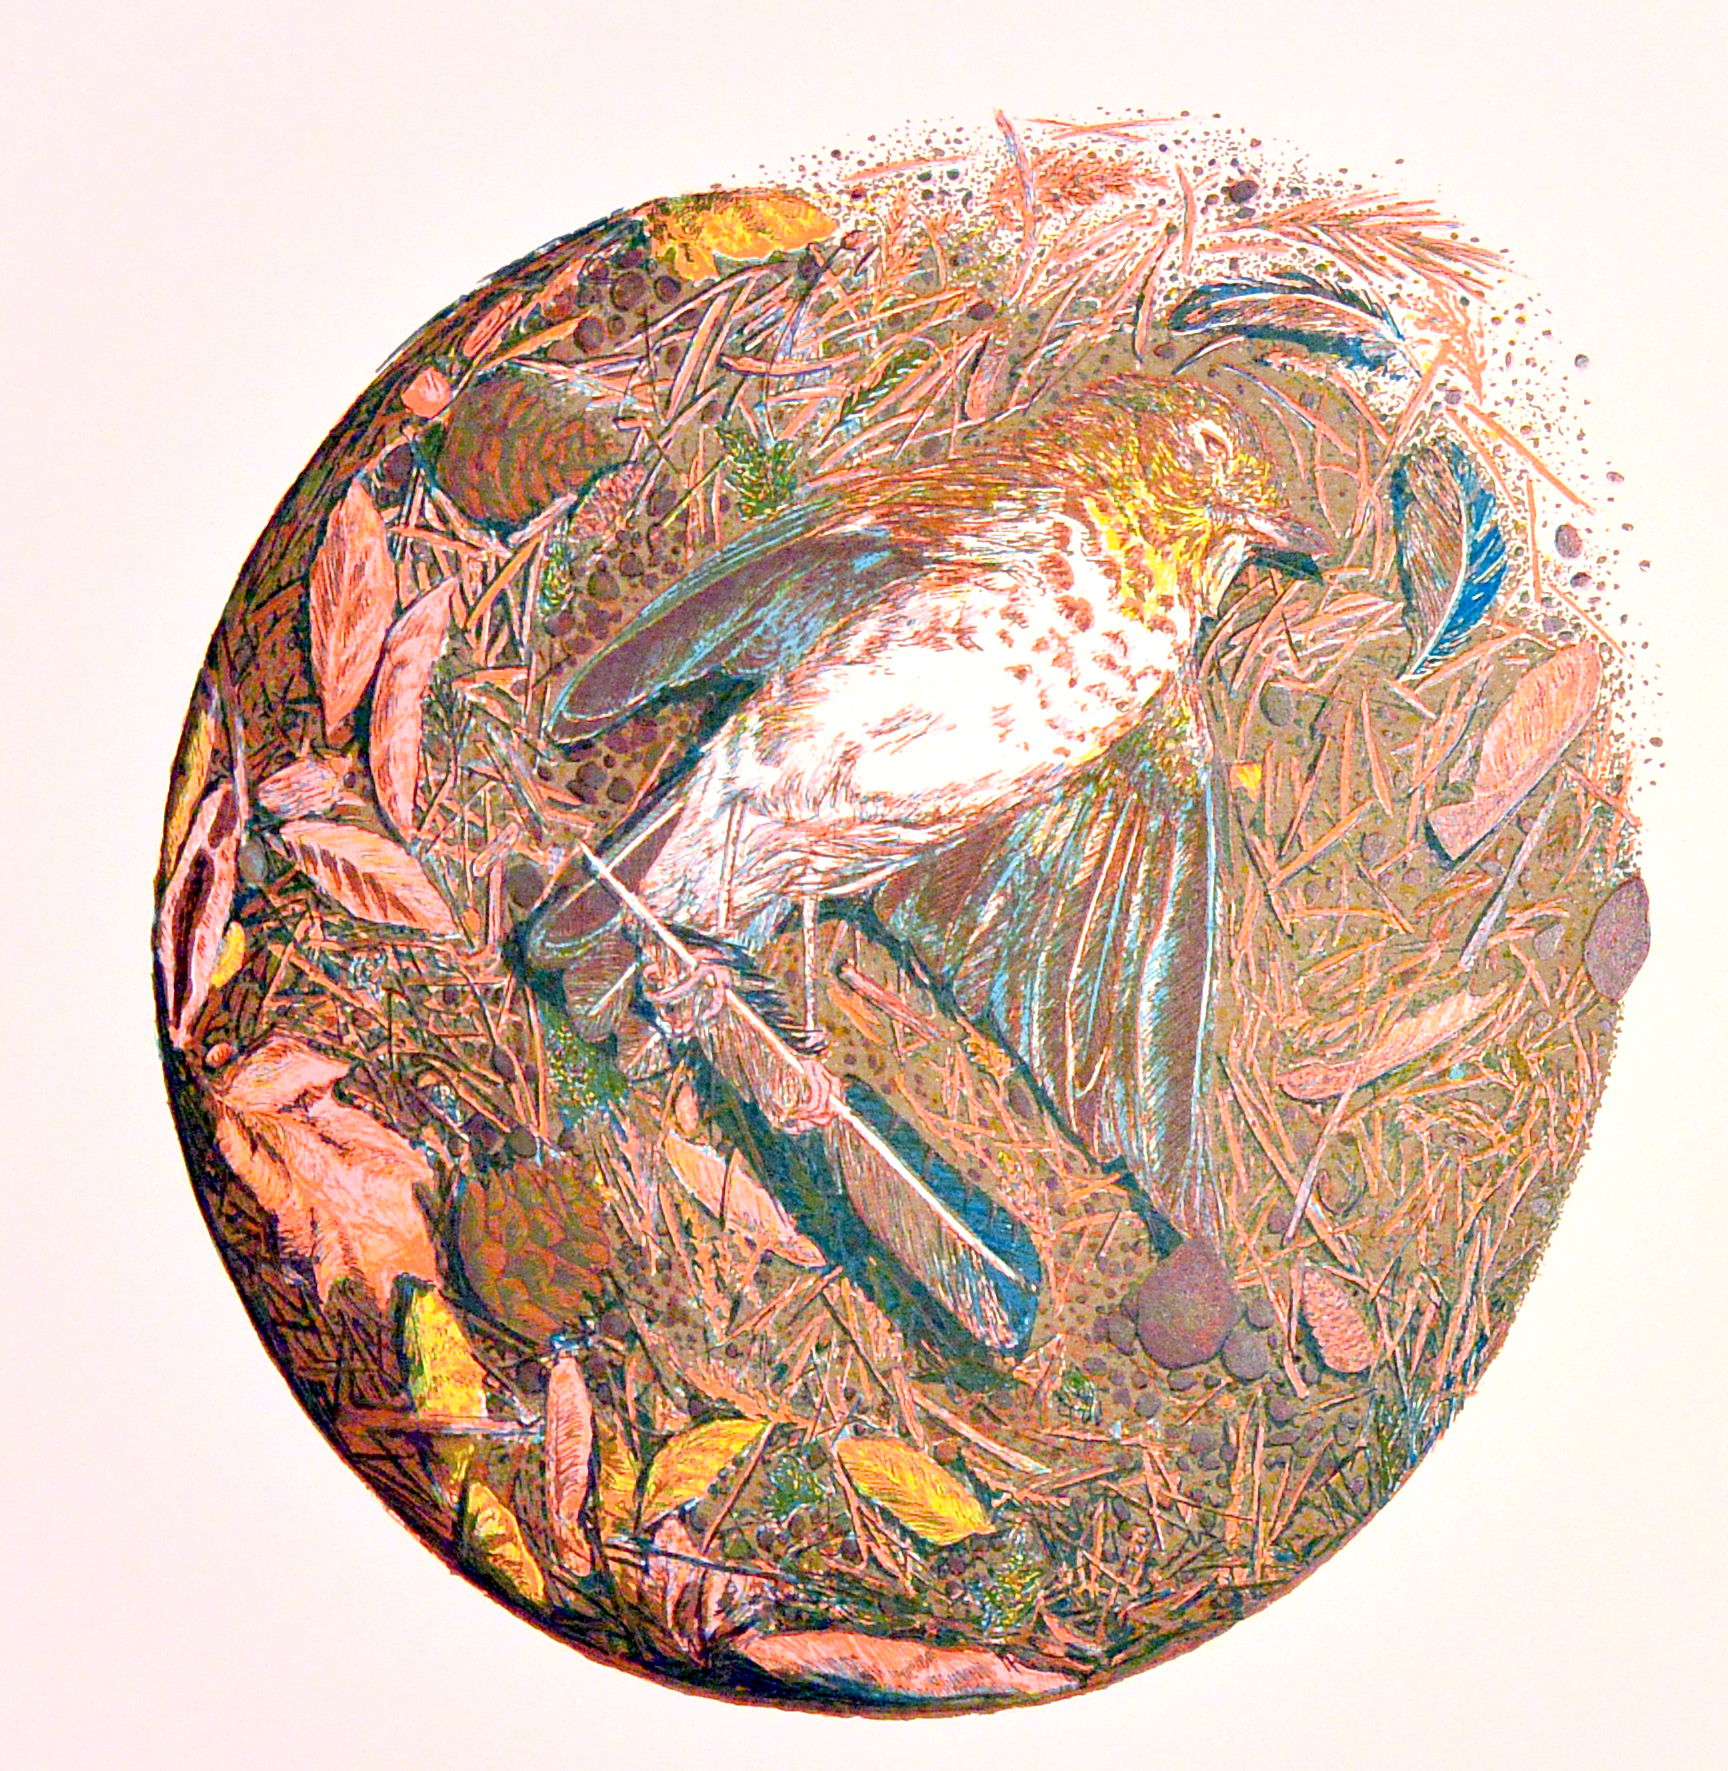 Layer 6, printed it a light magenta/red to give flesh tones to the bird's feet and add hue and detail to certain leaves and debris